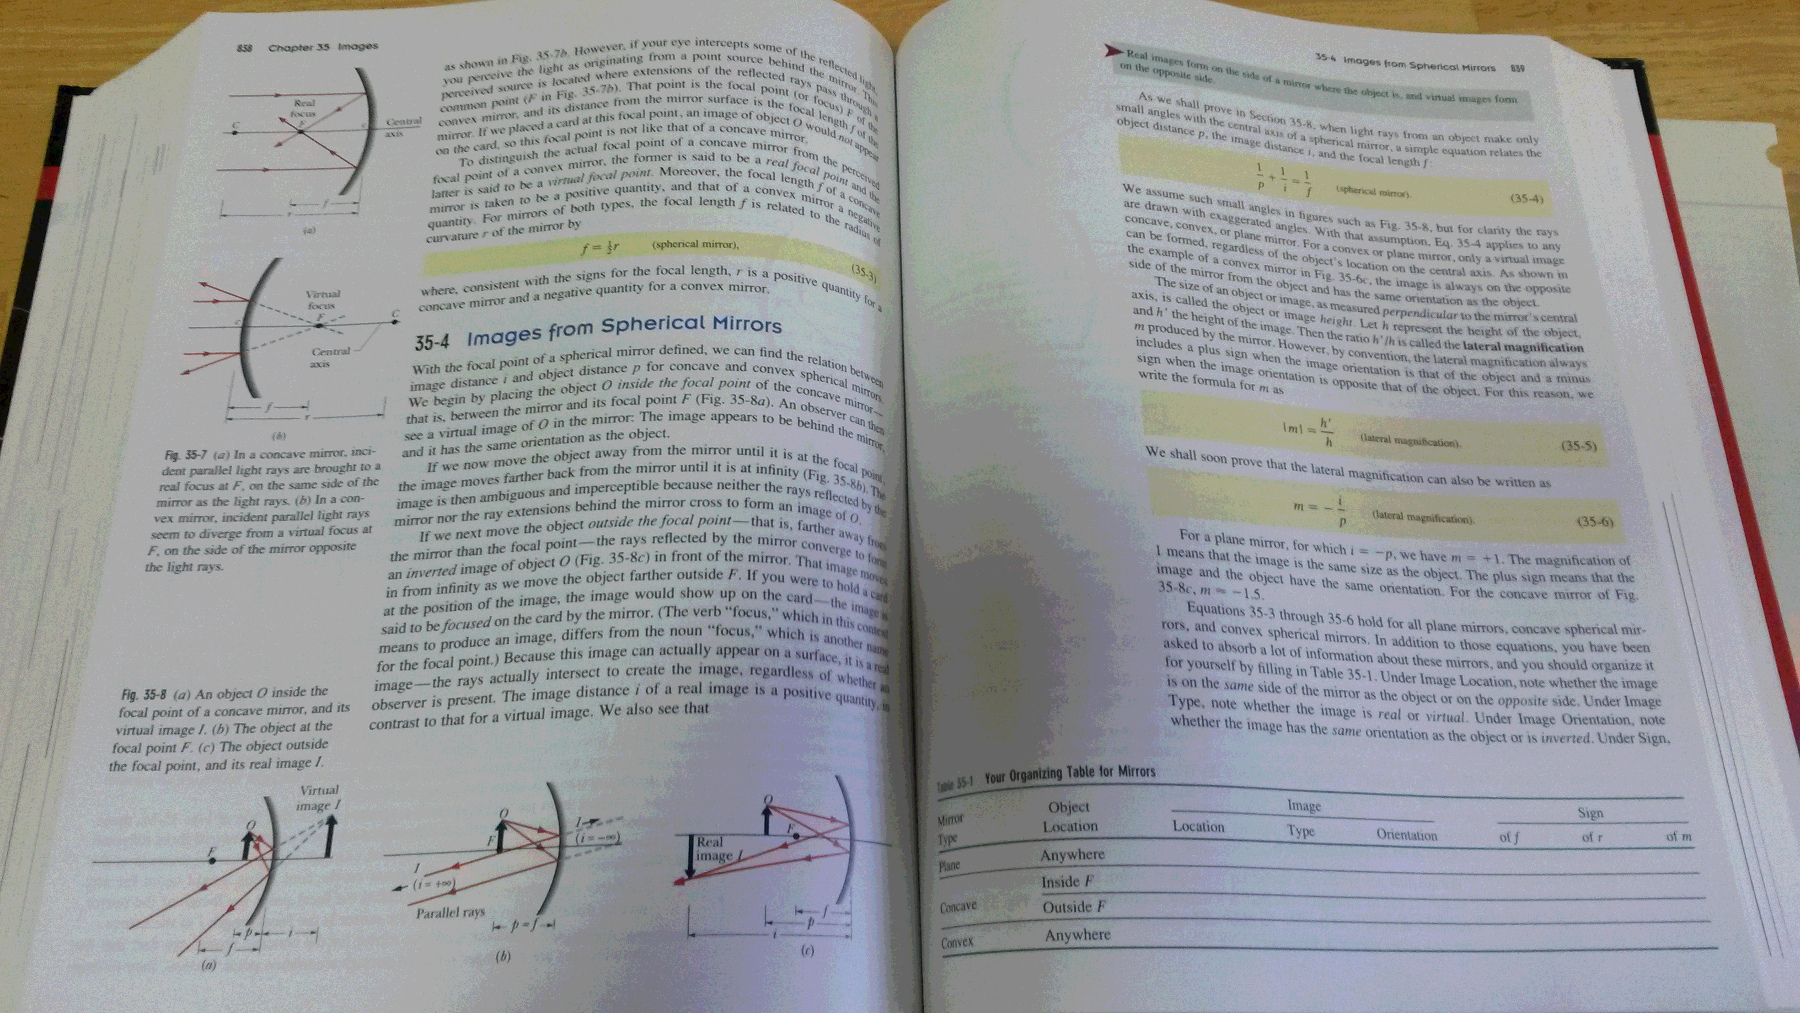 A refresher on optics equations from my physics textbook